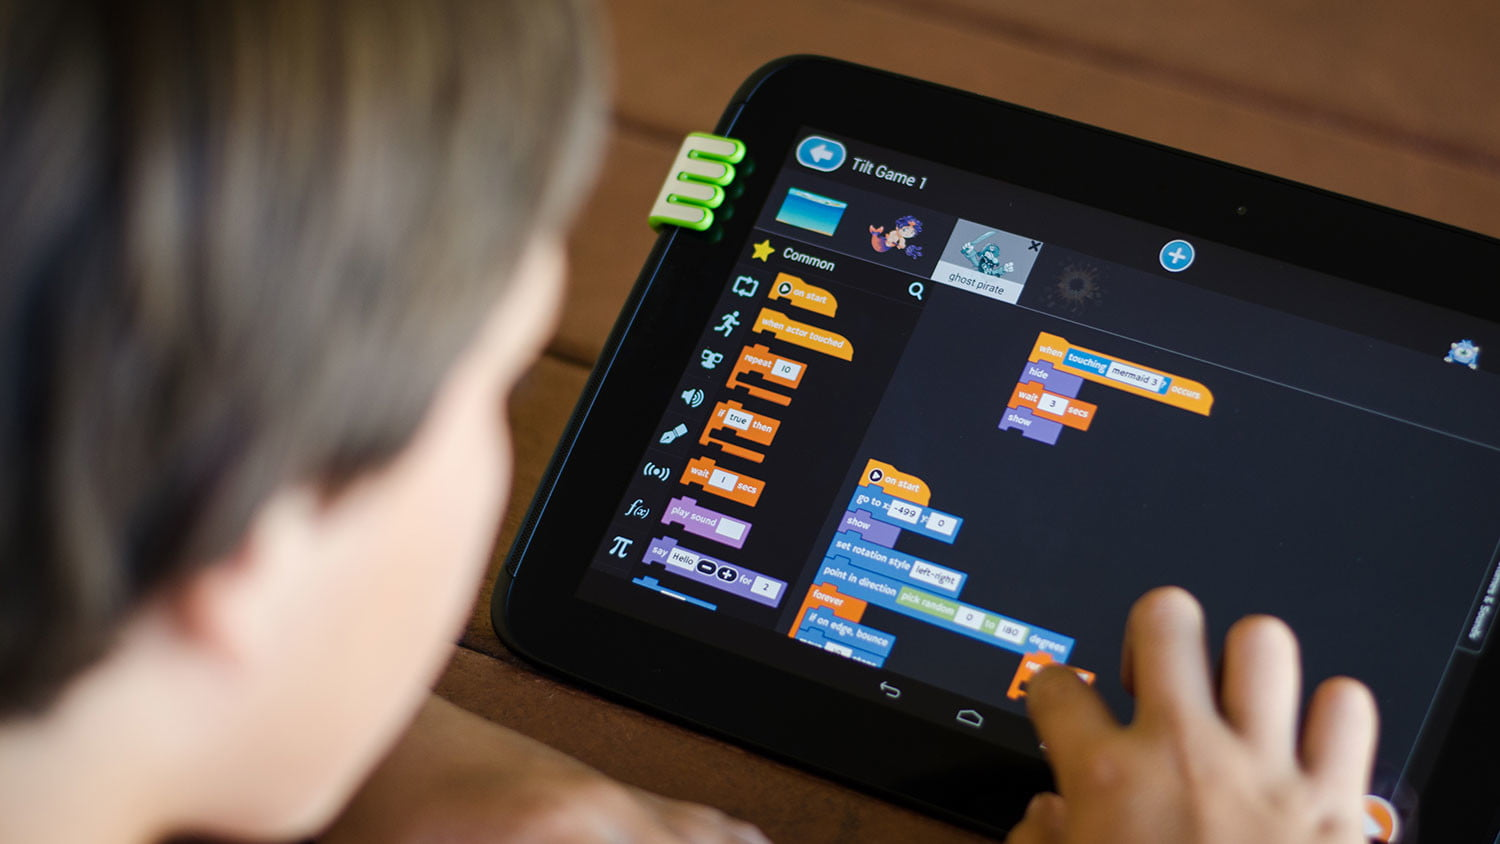 The Best Learn to Code Apps   Digital Trends